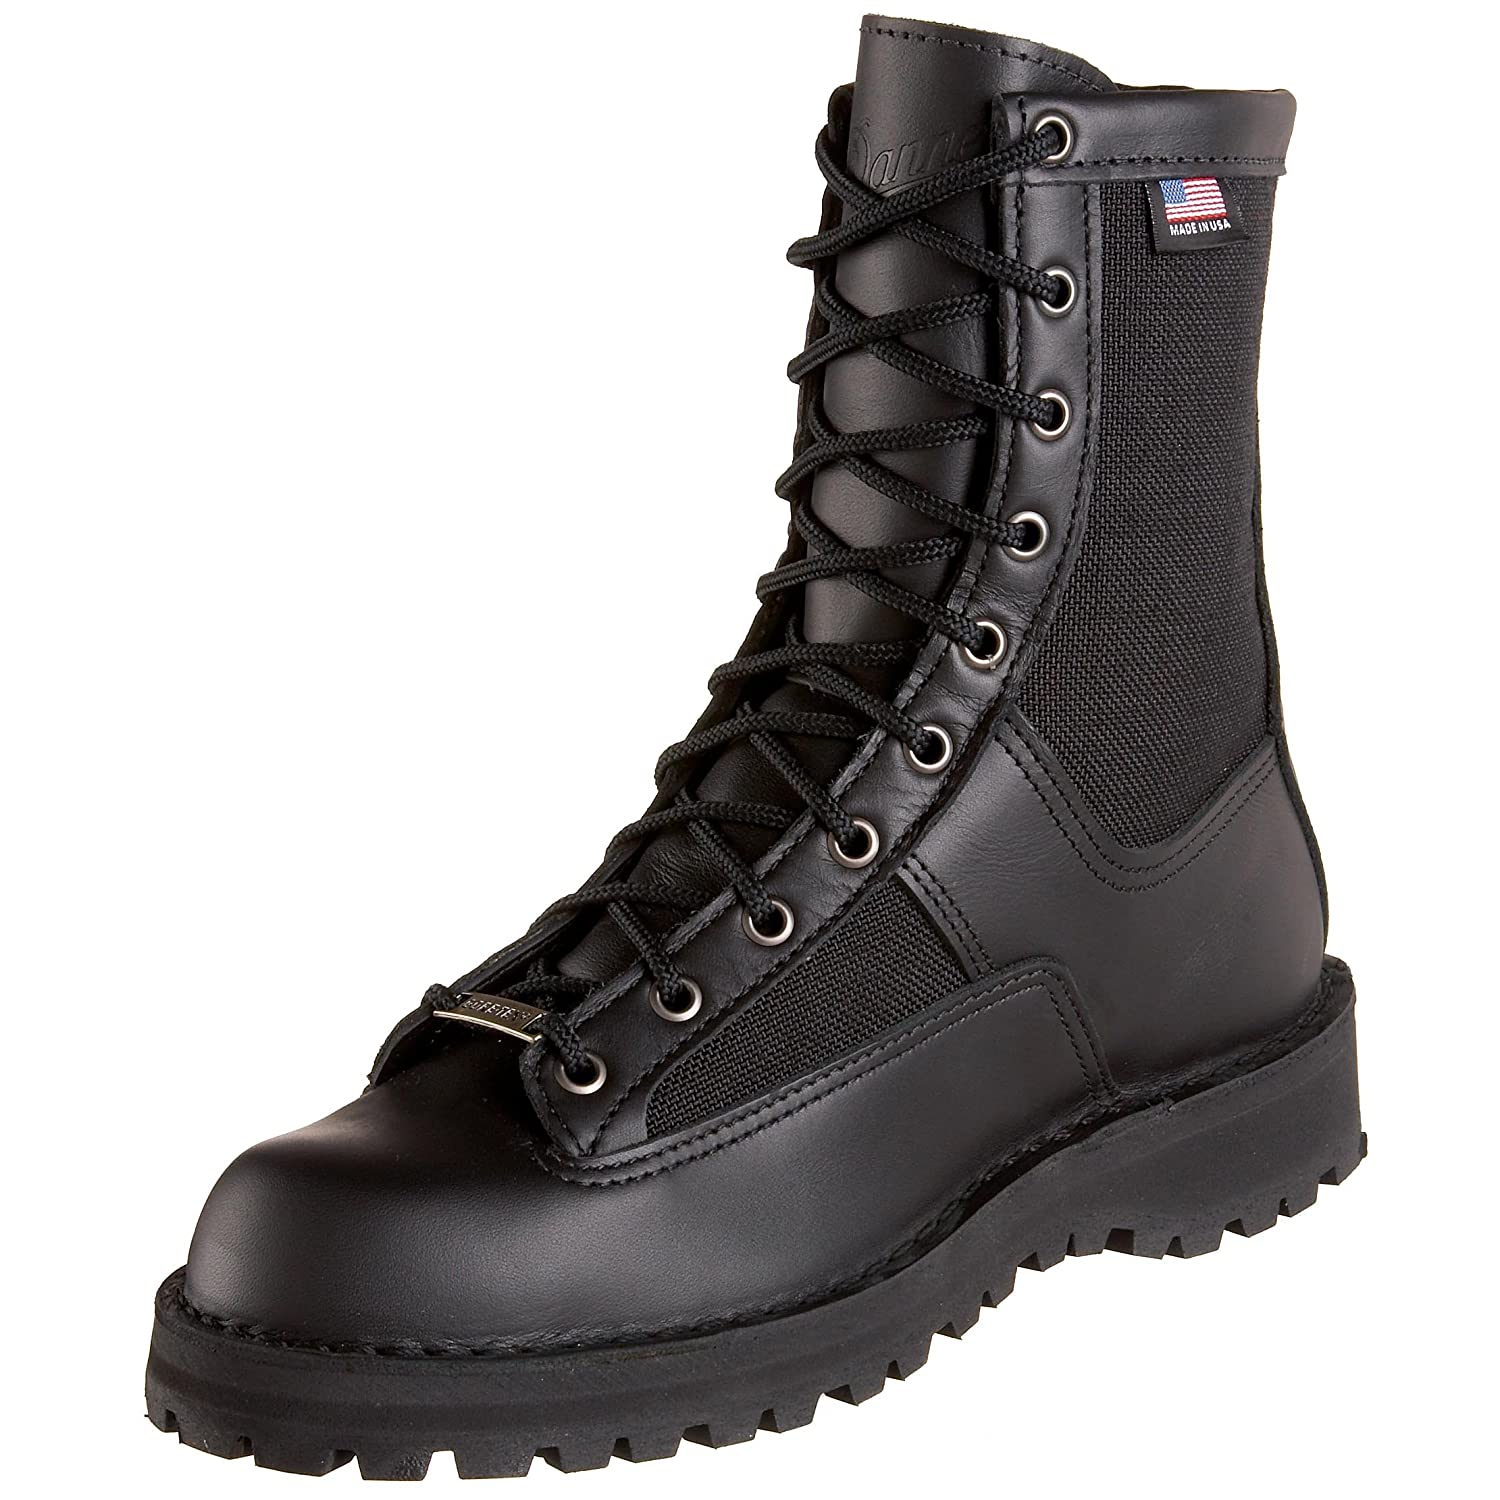 5b540a0d961 Amazon.com: Danner Women's Fort Lewis 10